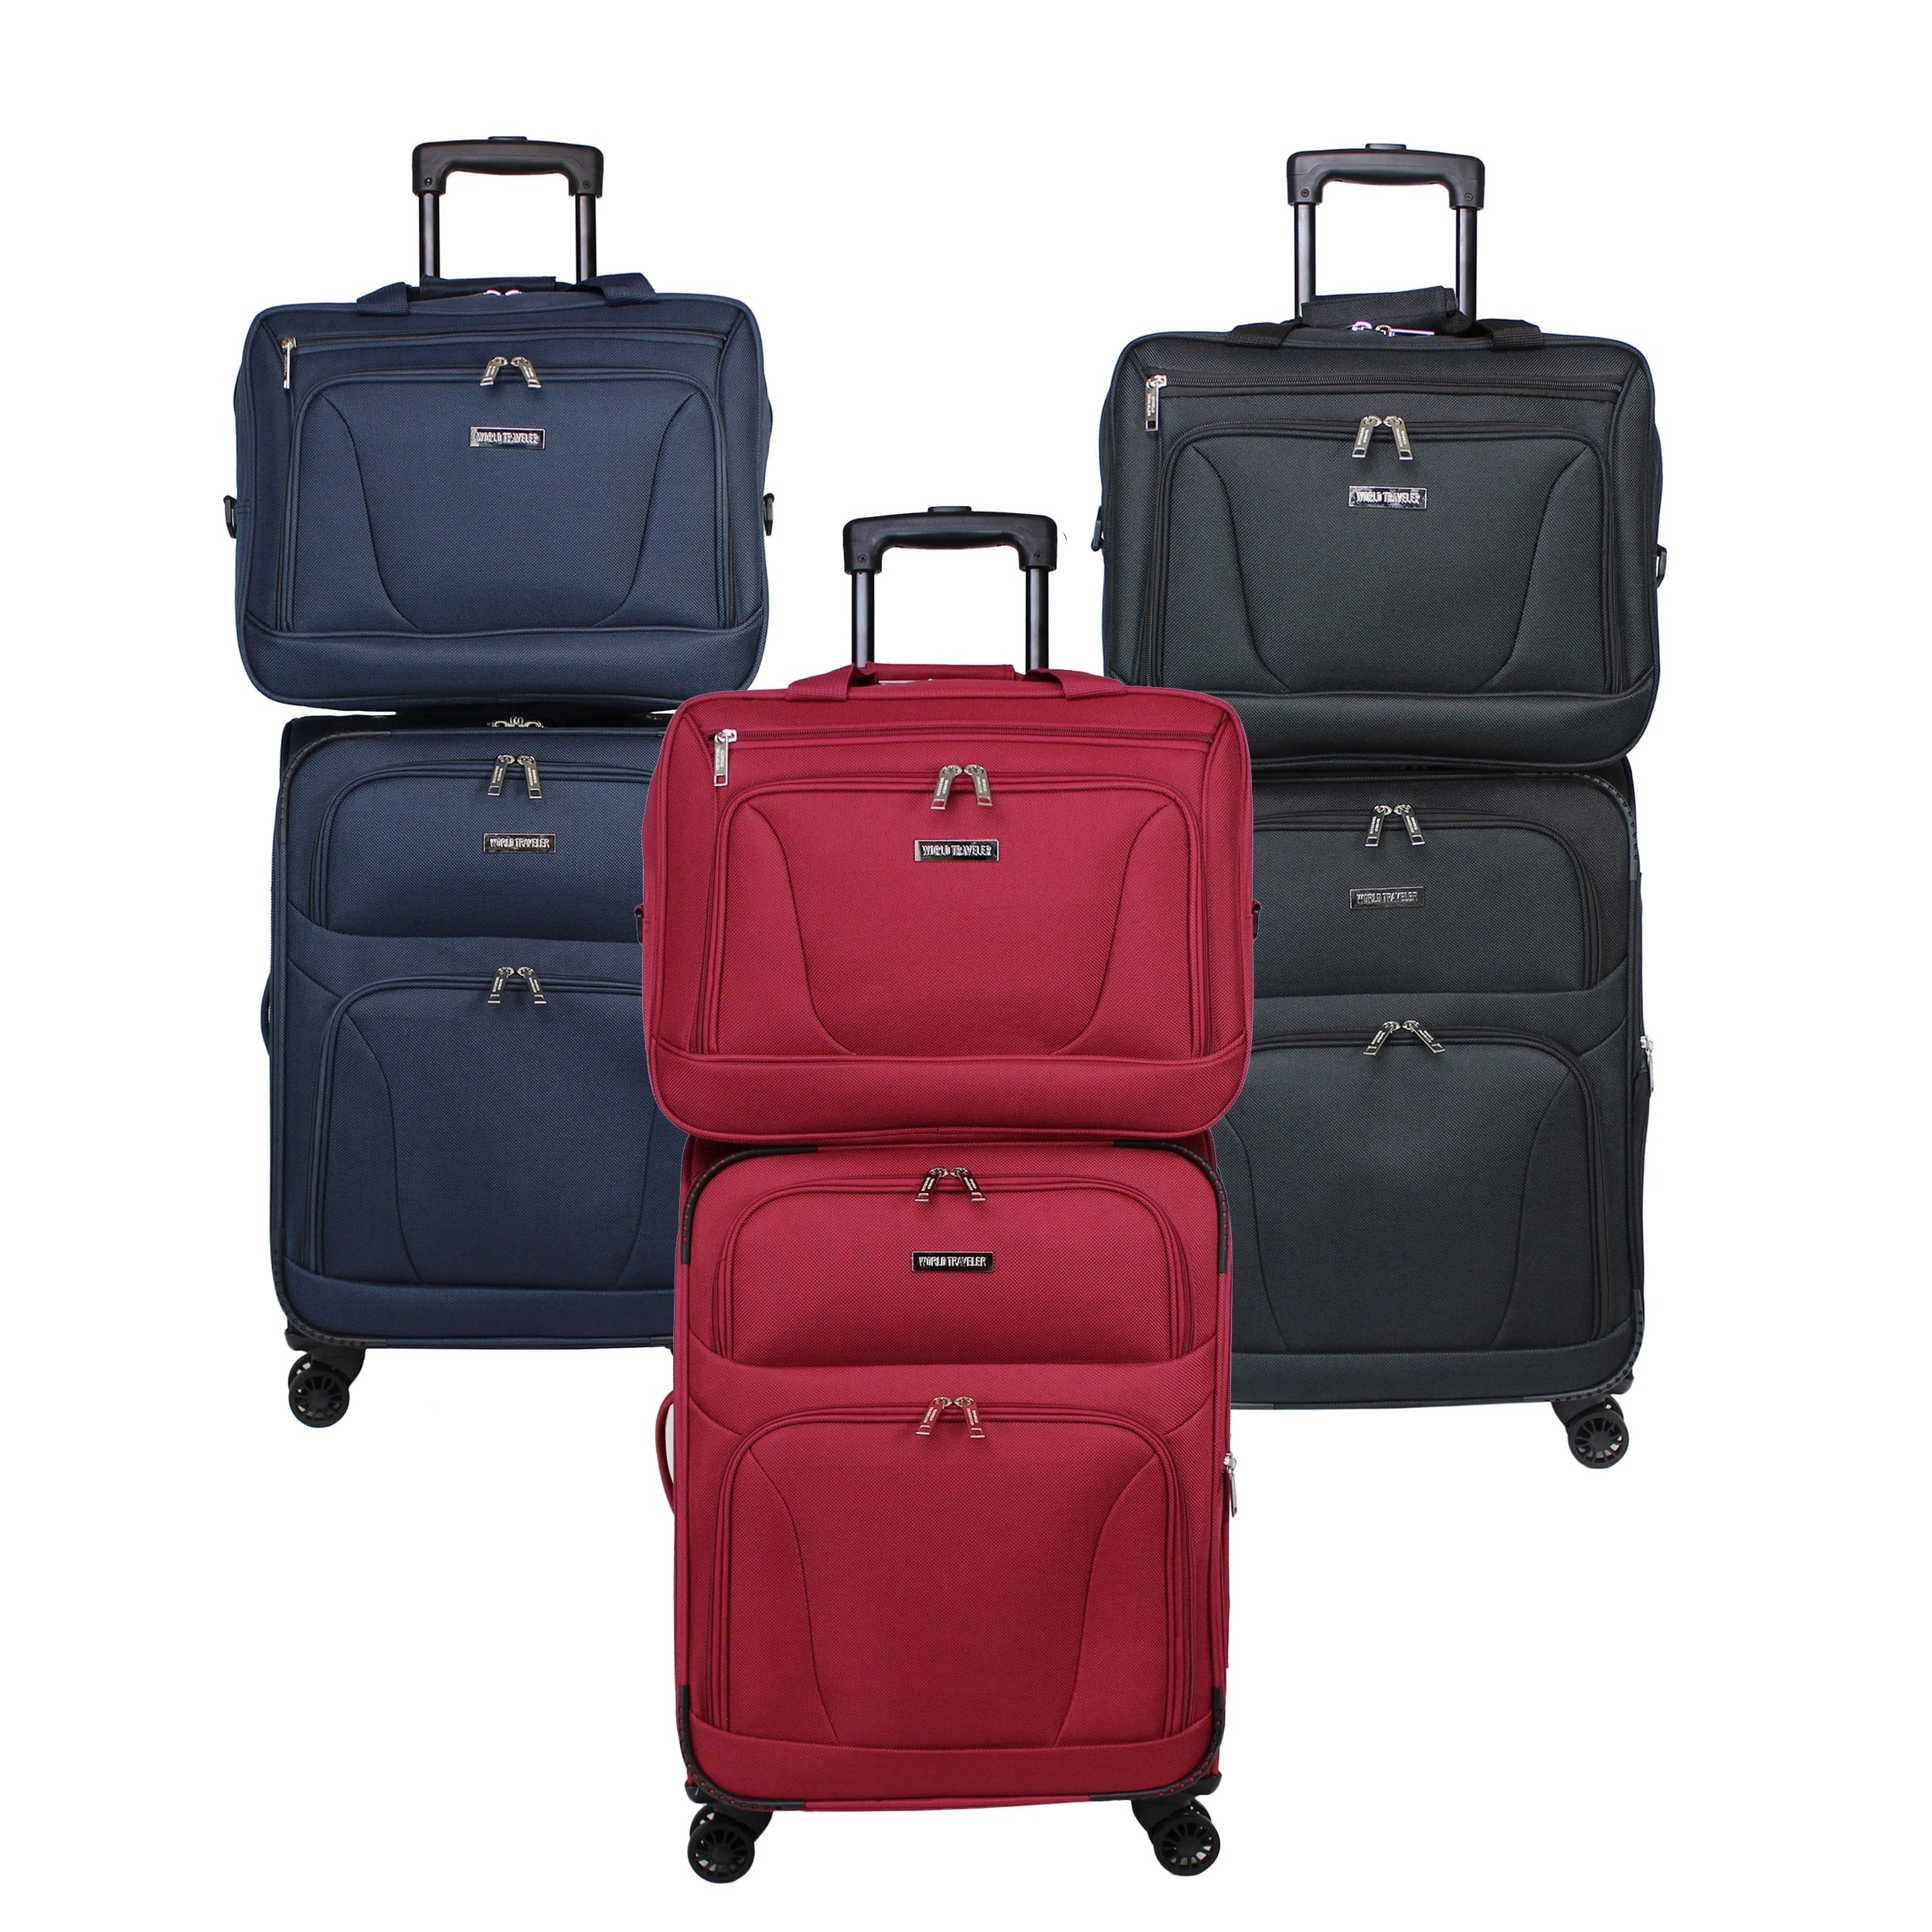 1b31e4b0ccdf Softsided Luggage Sets | Find Great Luggage Deals Shopping at Overstock